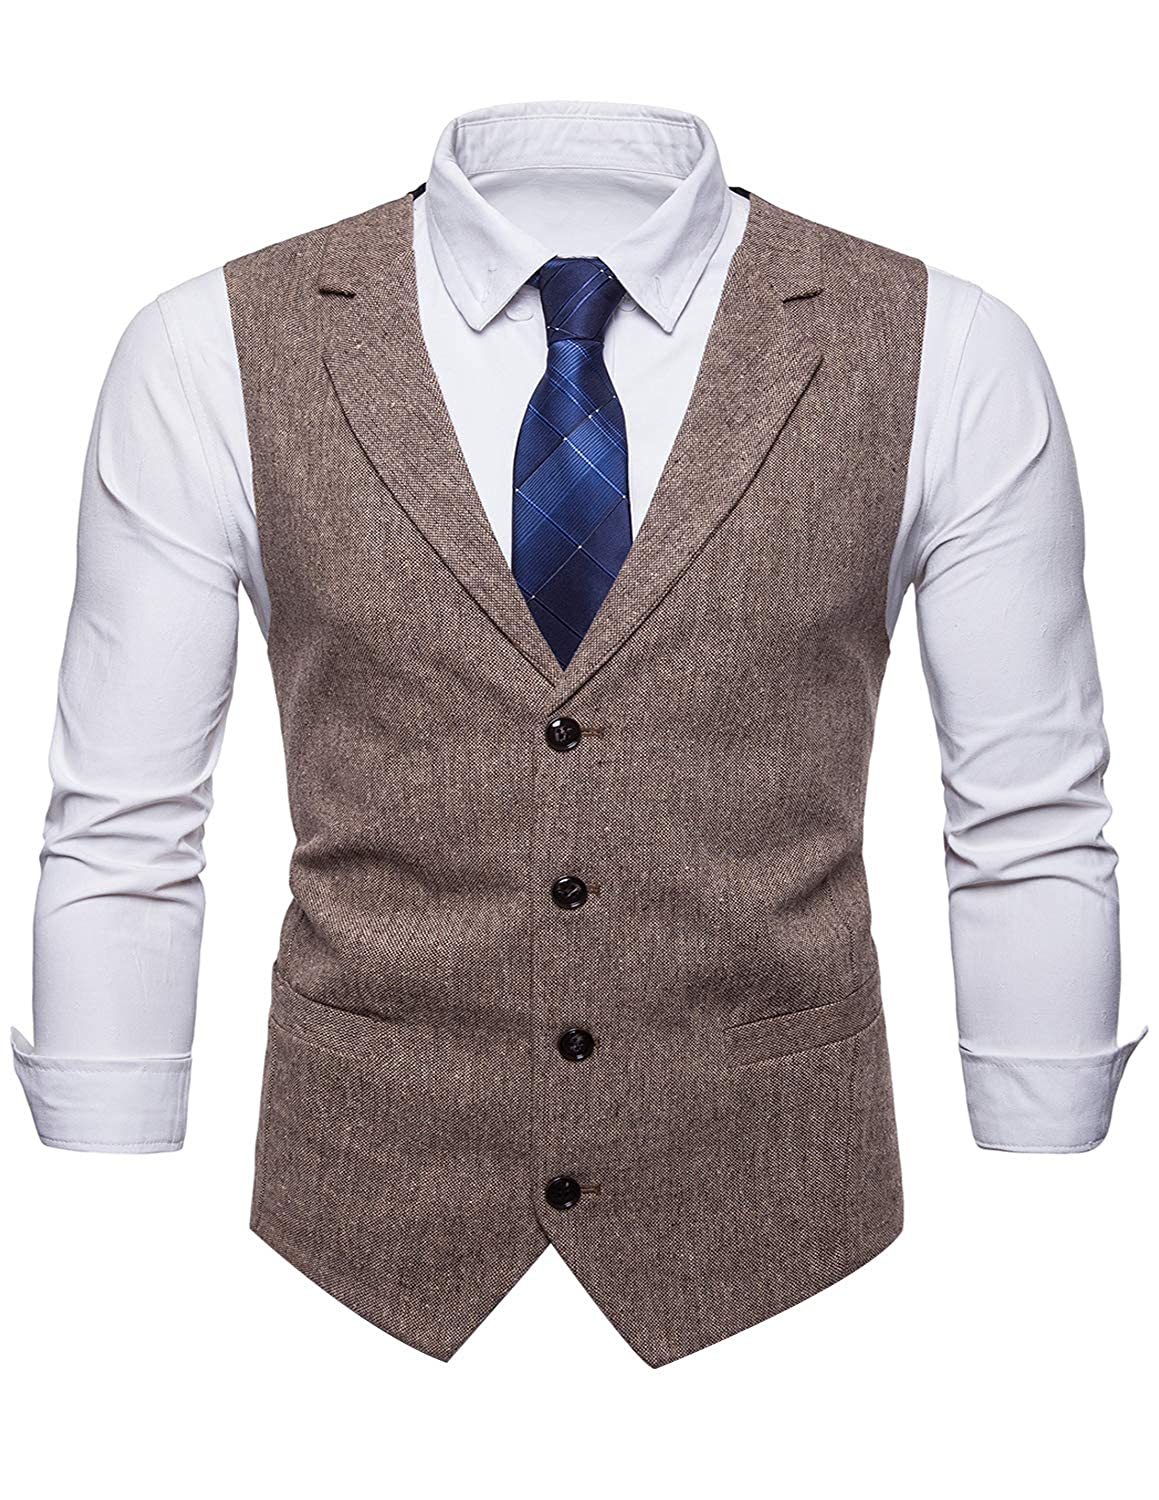 STTLZMC Mens Casual Dress Vests 4 Button Tailored Collar Tweed Suit Waistcoat LSMANUSMV01214